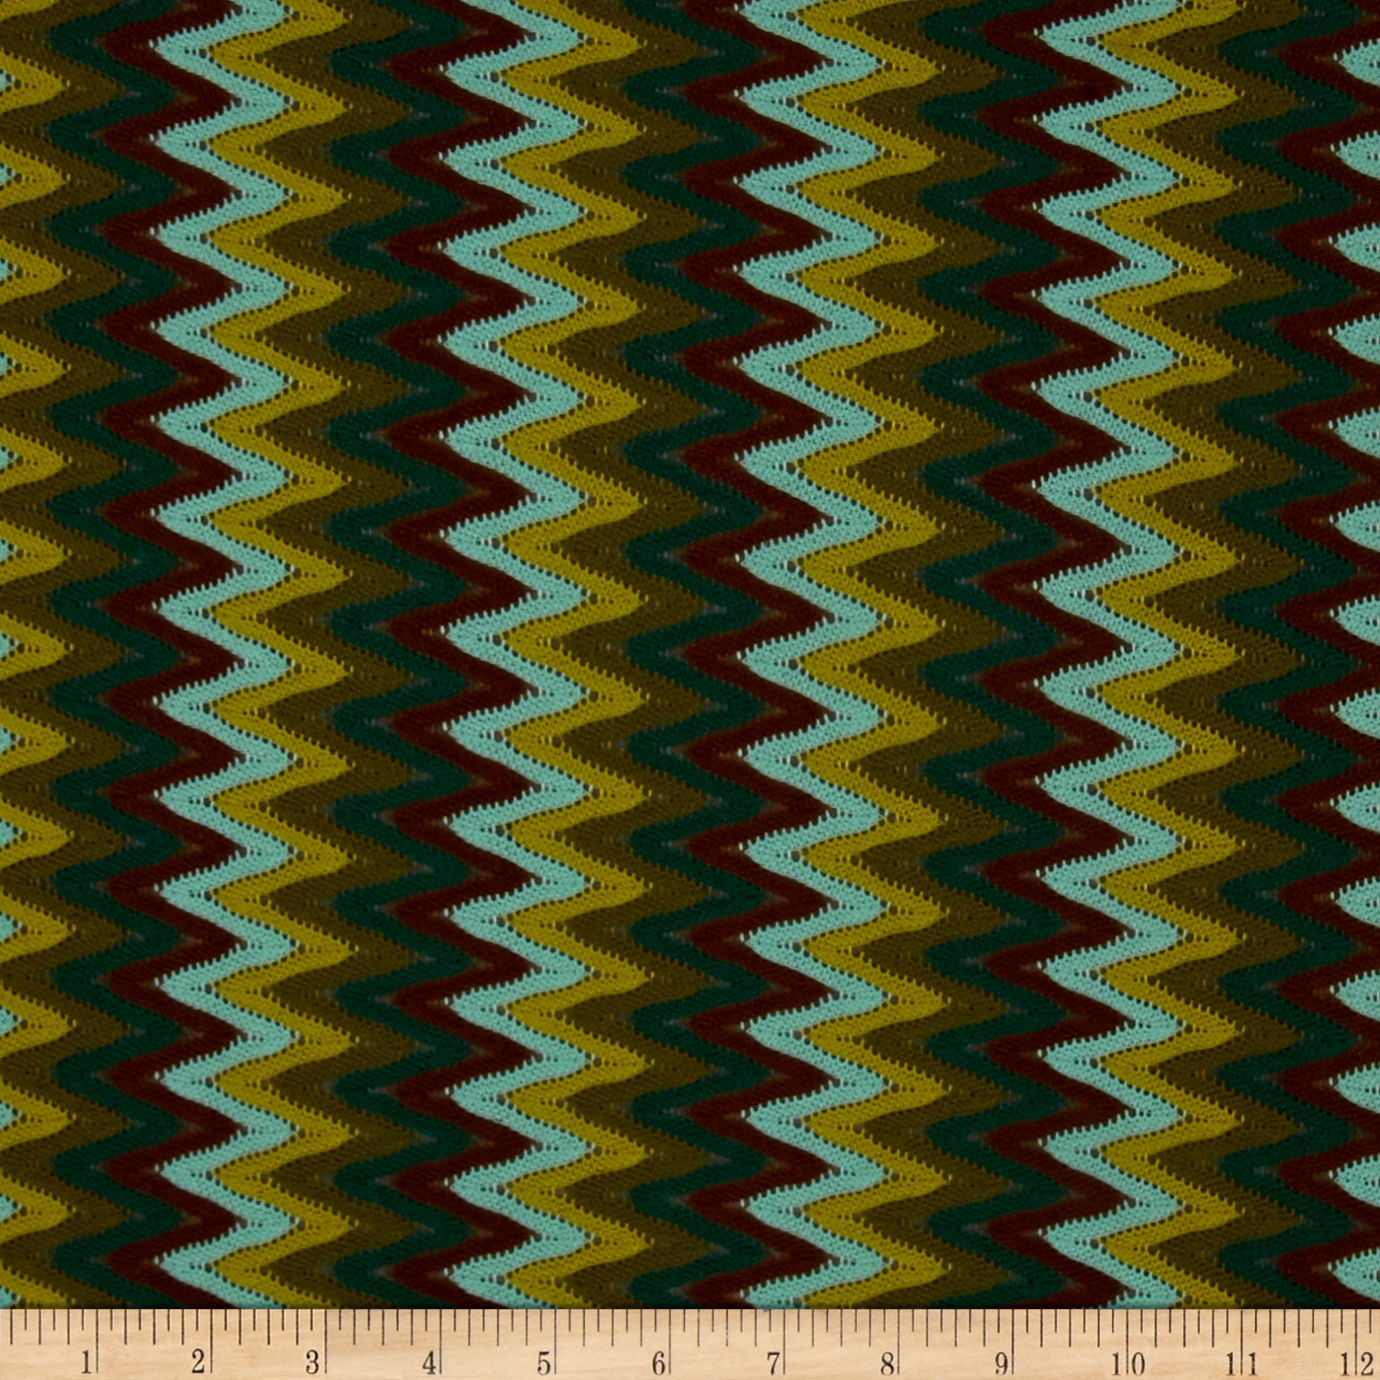 Novelty Crochet Lace Chevron Brown/Green Fabric